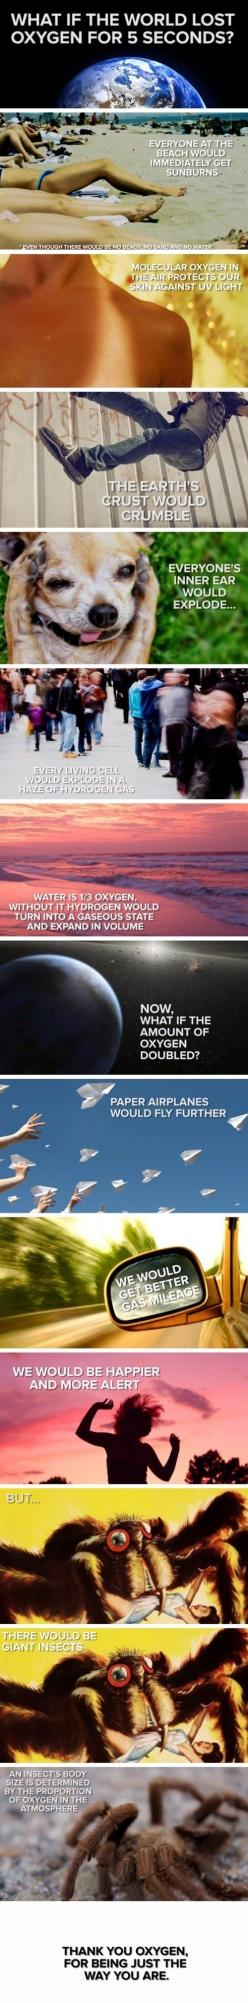 World without oxygen // funny pictures - funny photos - funny images - funny pics - funny quotes - #lol #humor #funnypictures: Pictures Funnypictures, Funny Pics, Oxygen, Funny Pictures, Humor Funnypictures, Funny Images, Funny Quotes, Funnies, Funny Phot